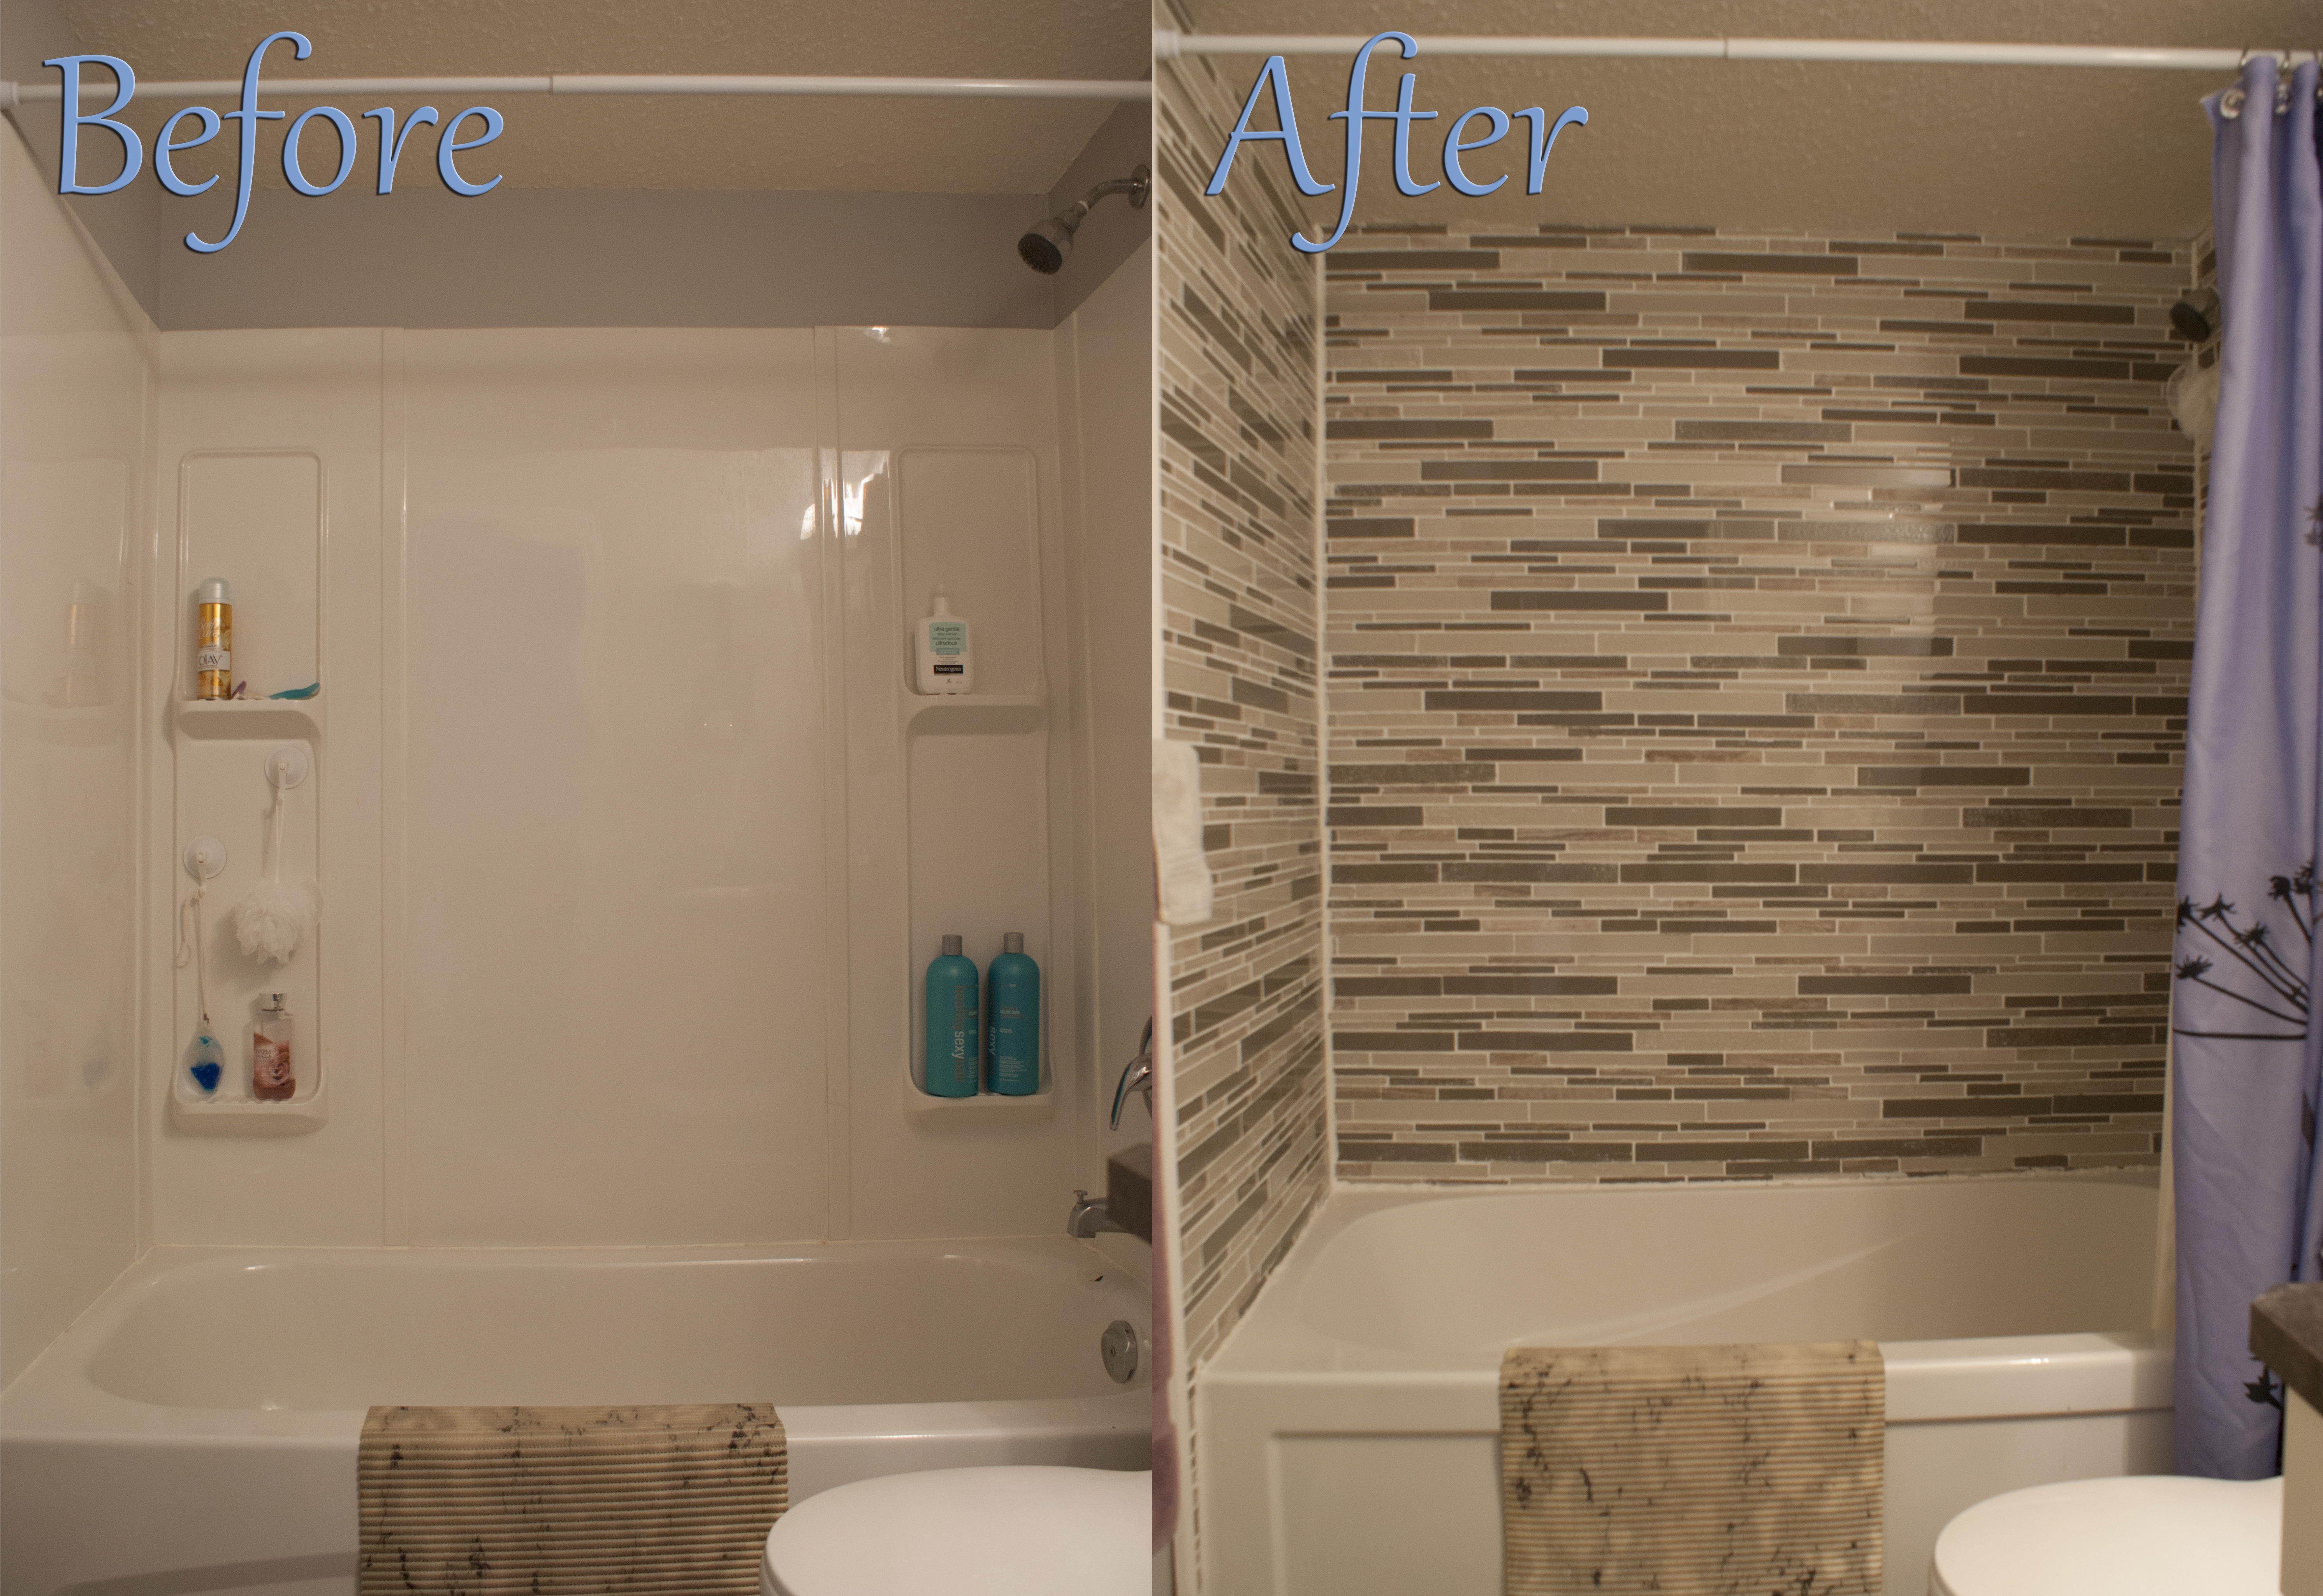 Industrial Lighting Bathroom. Diy Bathroom Renovations Before And After   Rukinet com